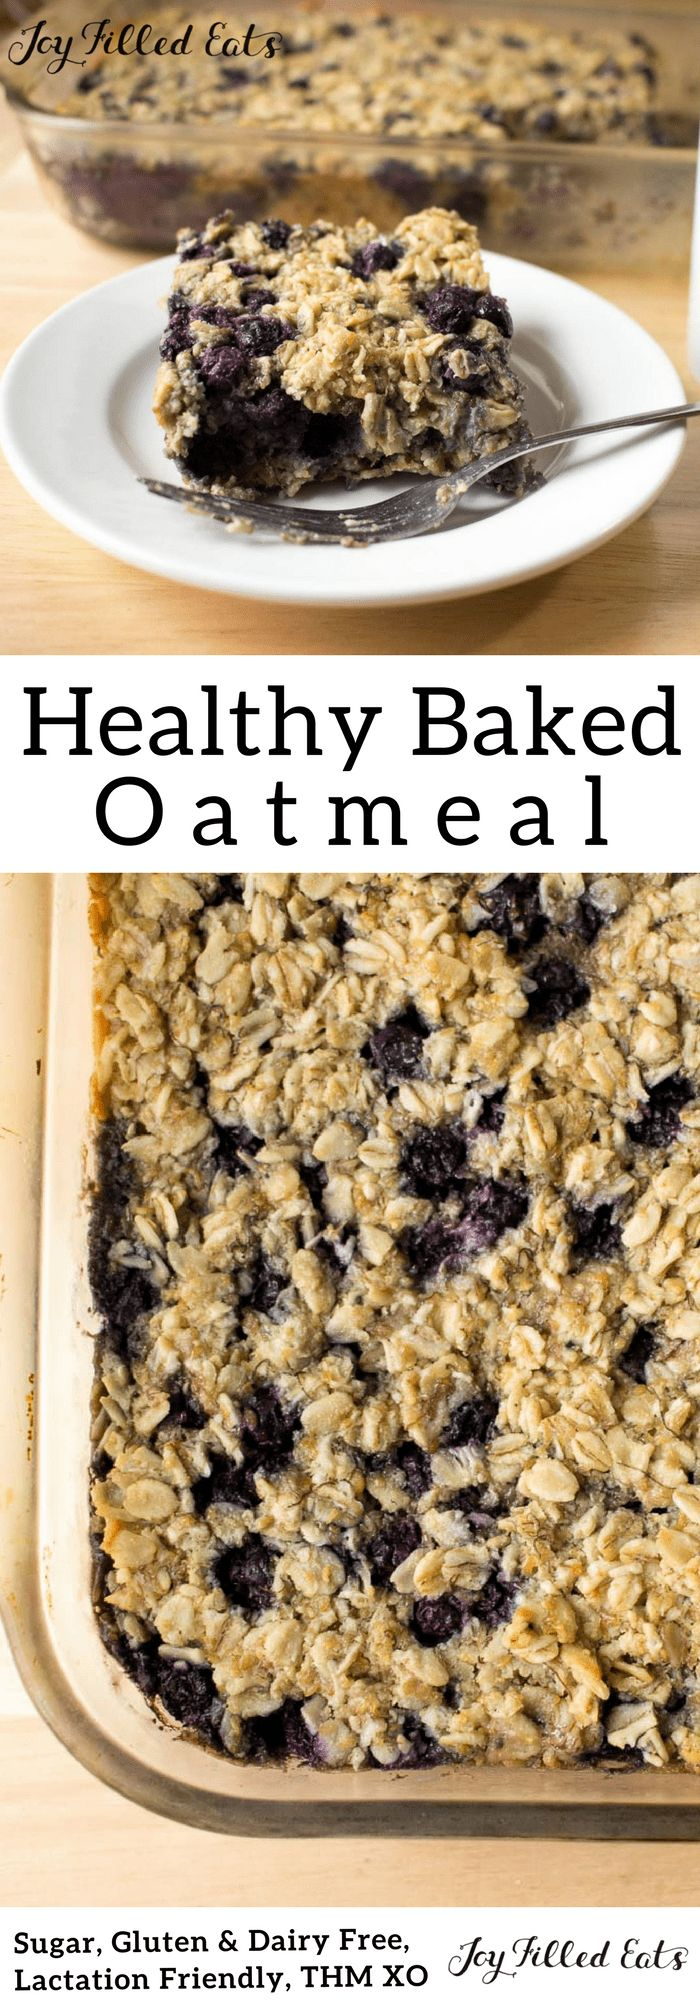 My Healthy Baked Oatmeal is perfect for breastfeeding mamas & everyone else. It is gluten-free, dairy-free, sugar-free, & Trim Healthy Mama friendly.